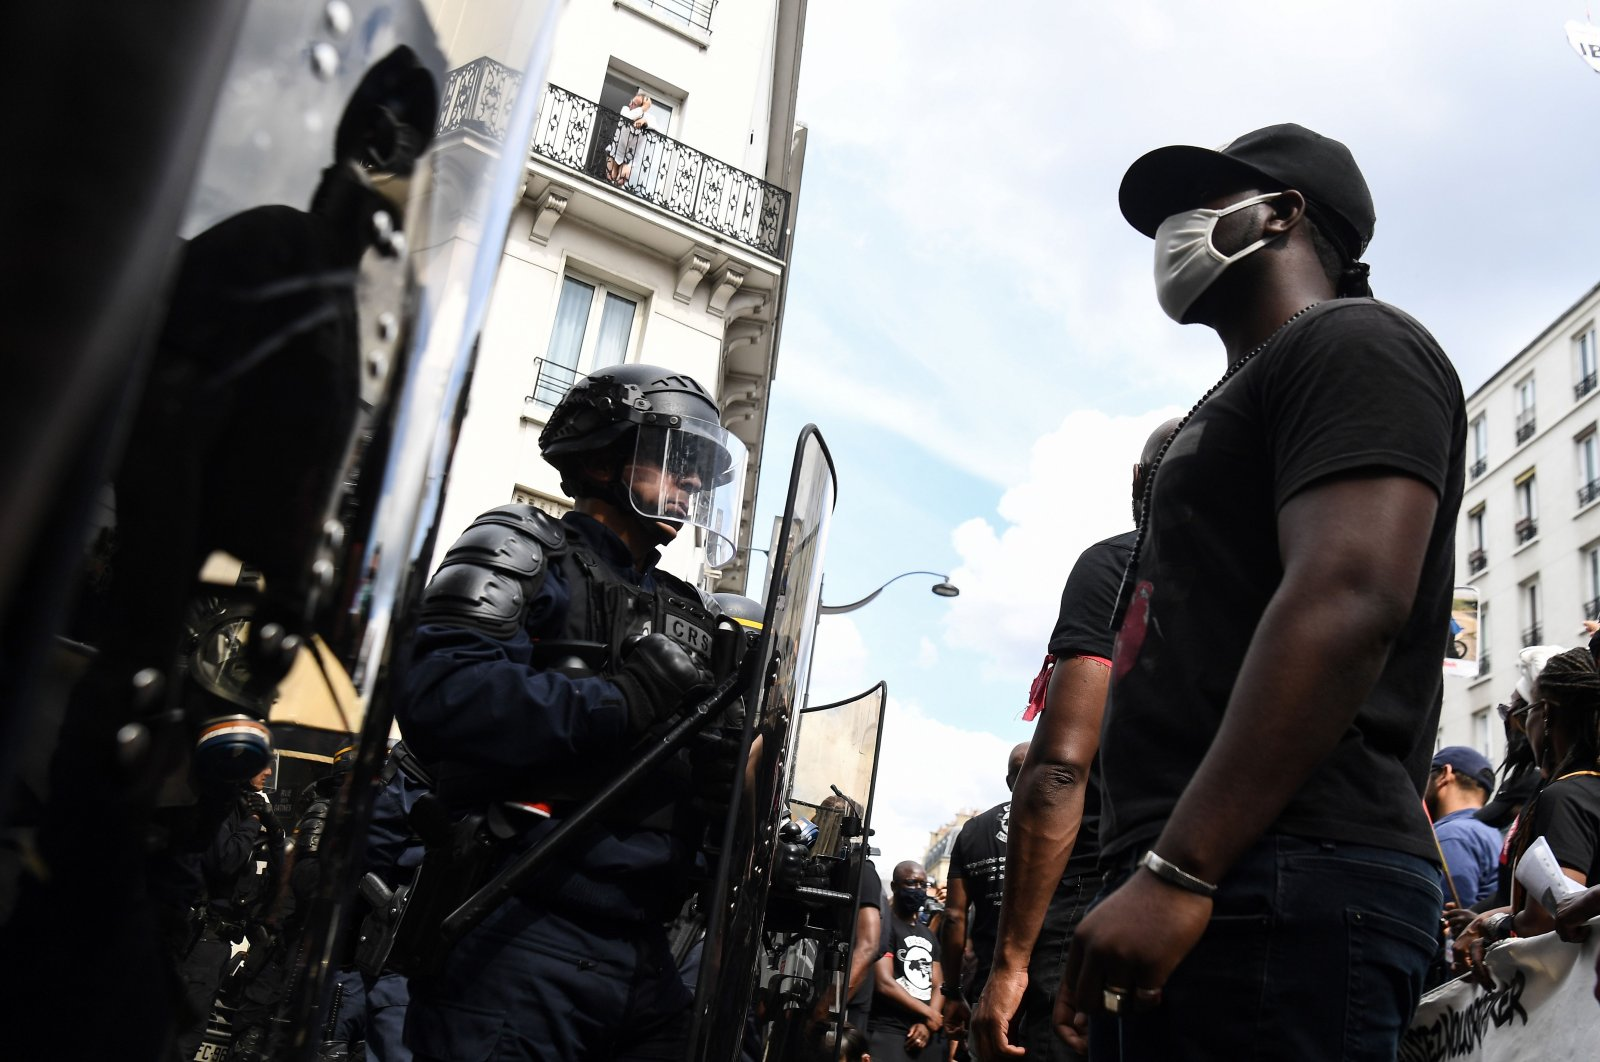 A protester wearing a face mask stands in front of police during a demonstration against racism and police brutality and in memory of Lamine Dieng, a French-Senegalese 25 year-old who died after his arrest in 2007, in Paris, June 20, 2020. (AFP File Photo)